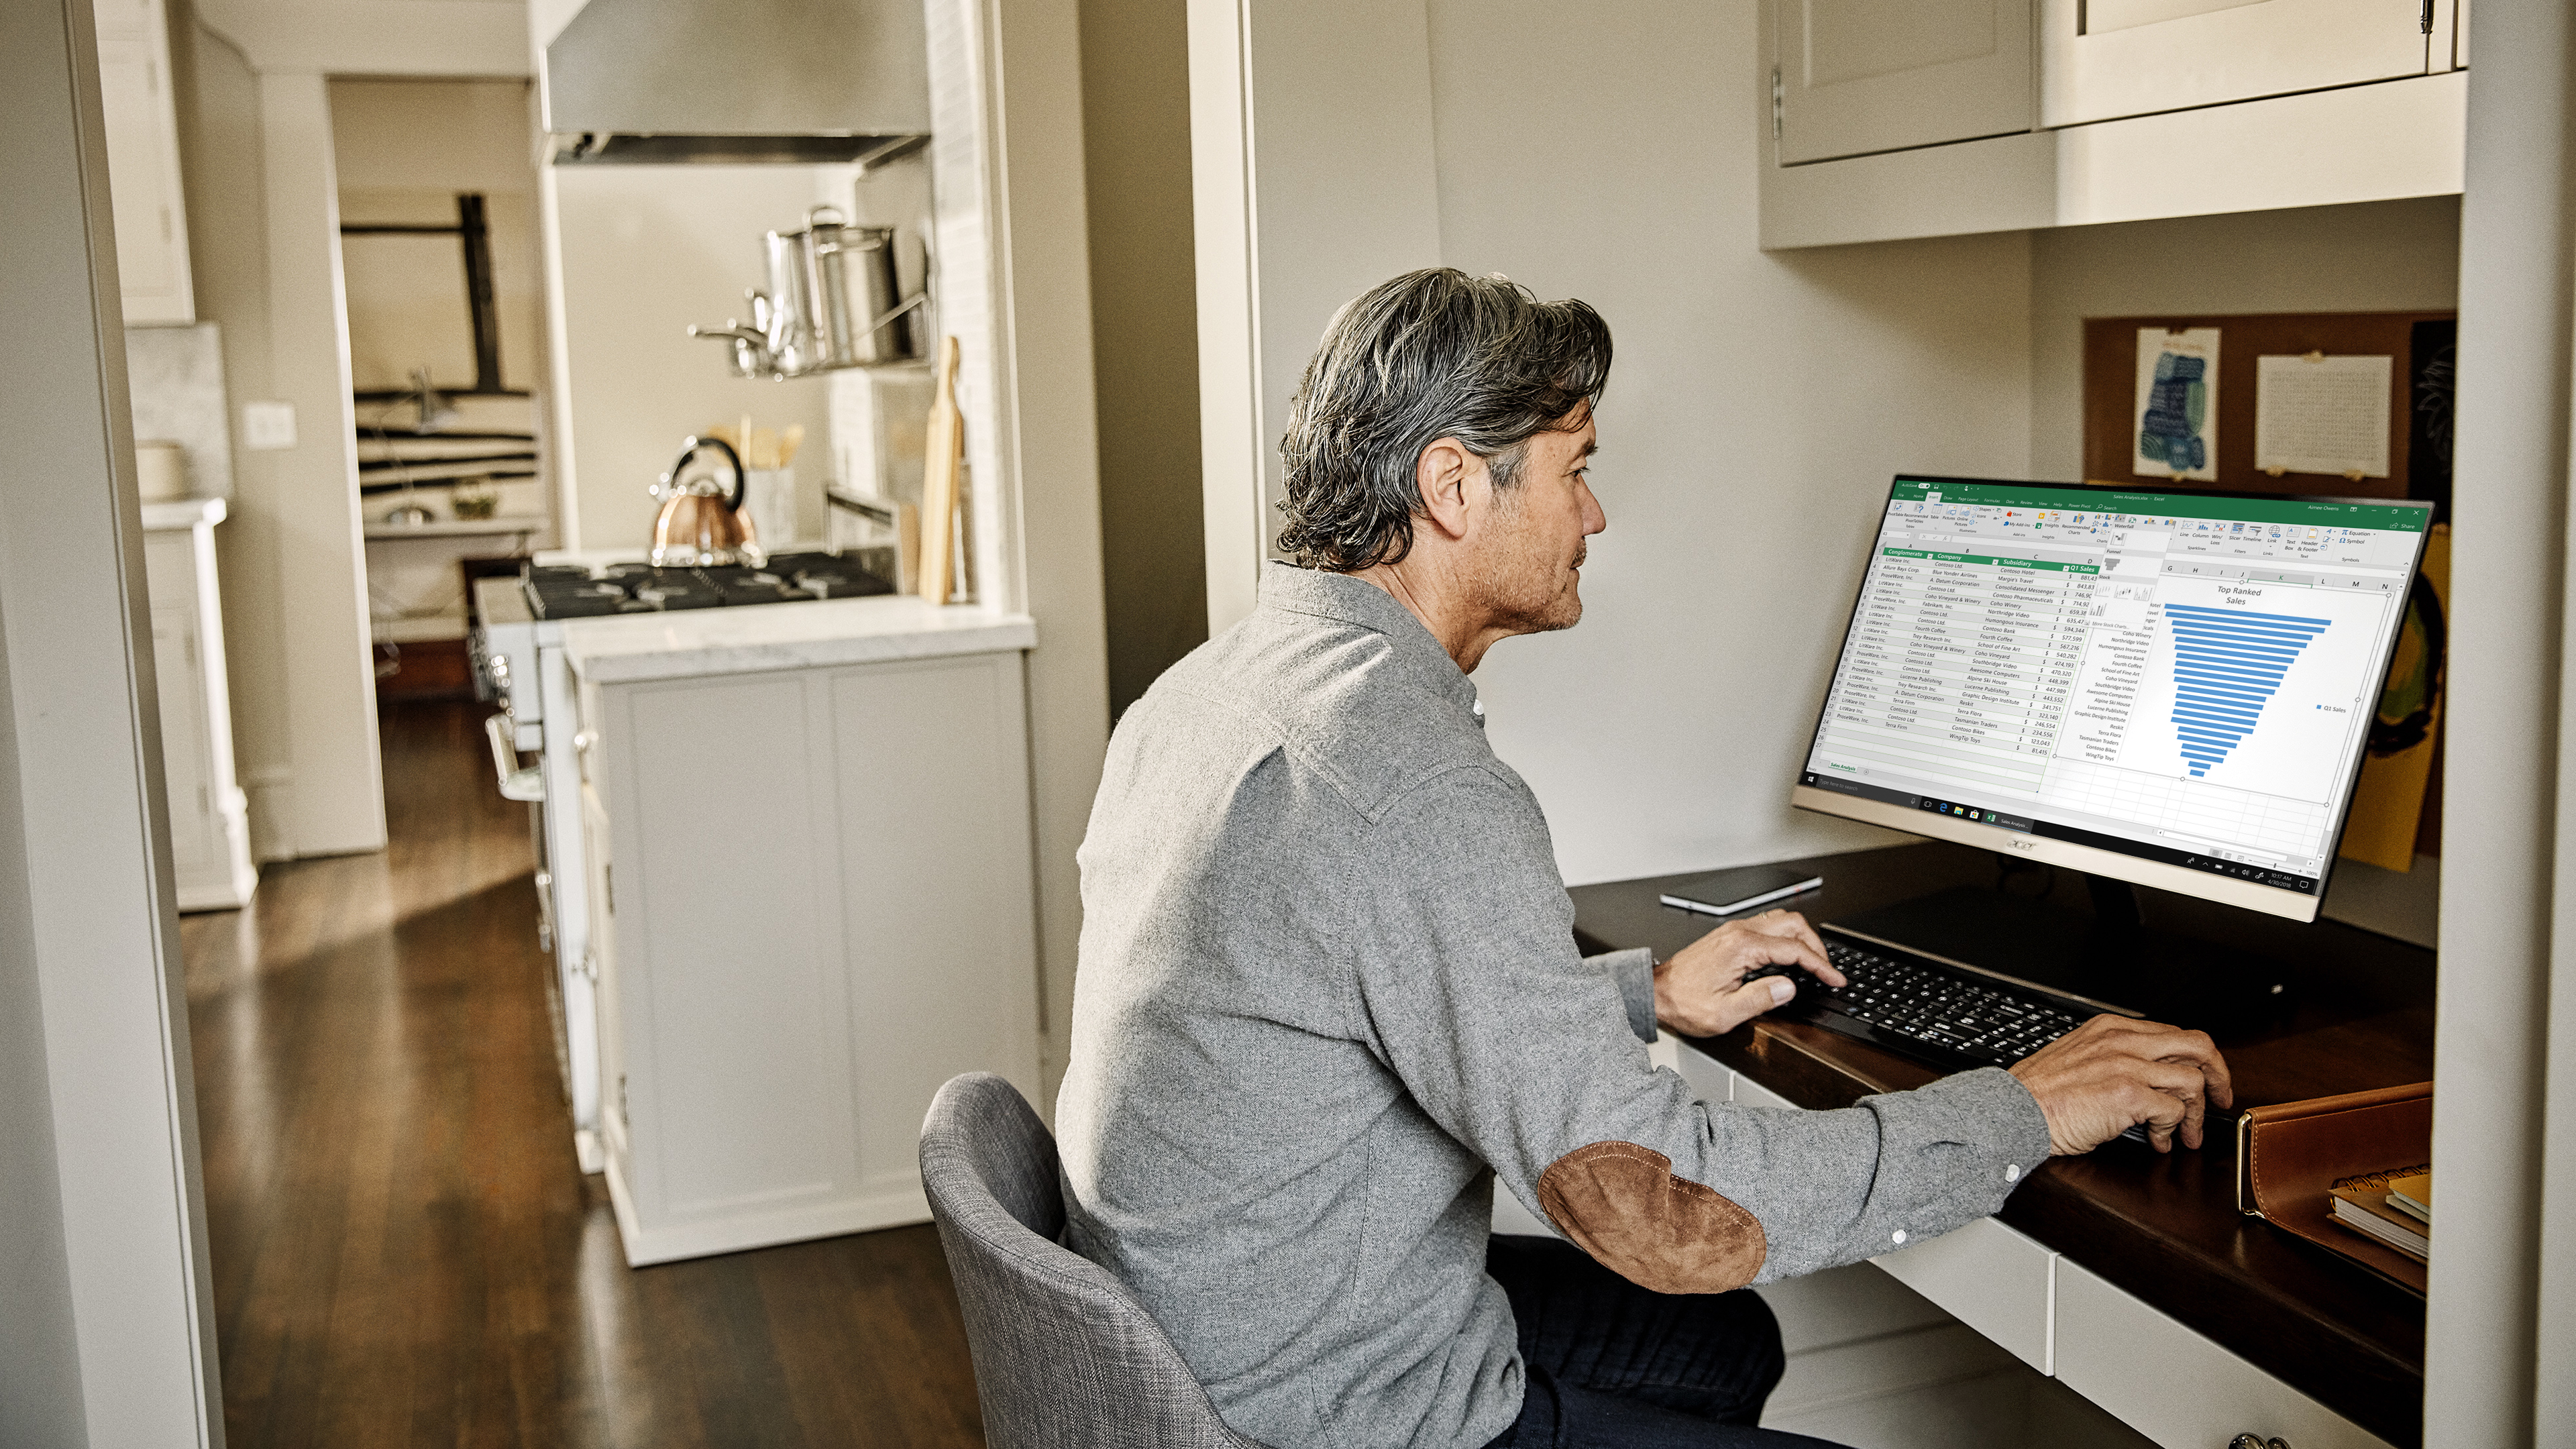 Home office home Modern Office Home Business 2019 Microsoft Buy Office Home Business 2019 Microsoft Store